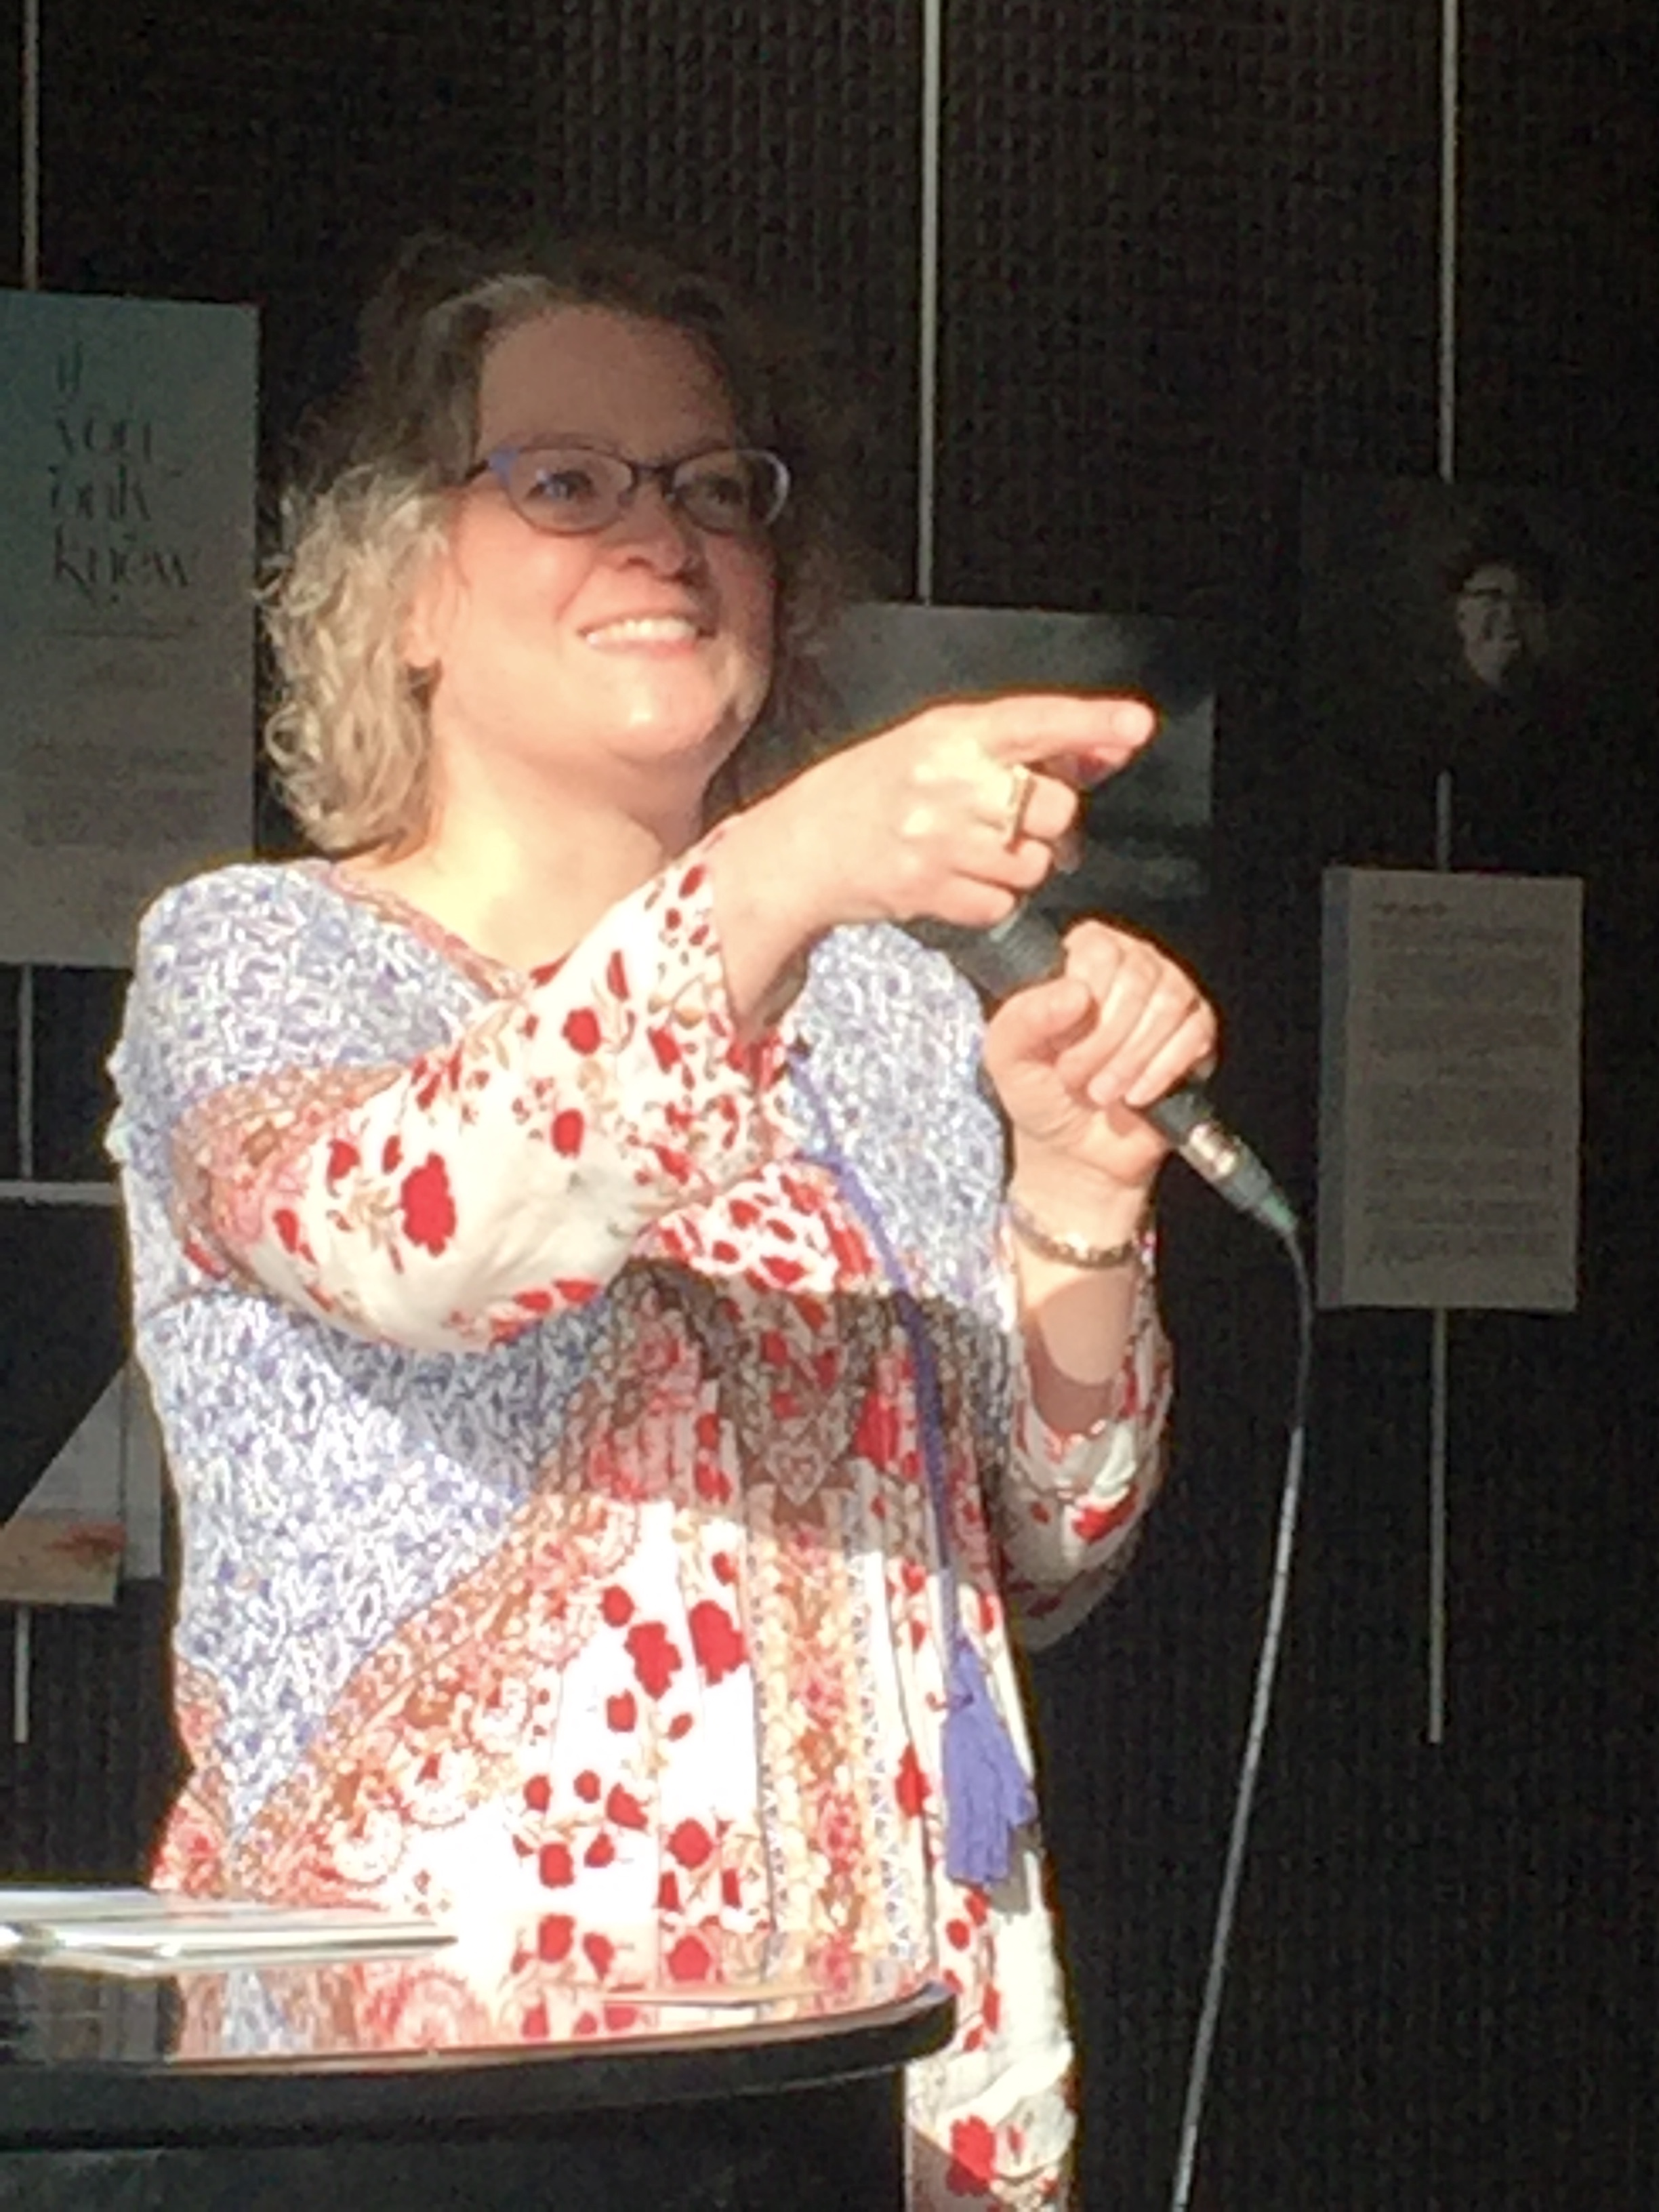 The audience asking questions - Not sure who I was pointing at or why….but I'm smiling, so it's all good. :)